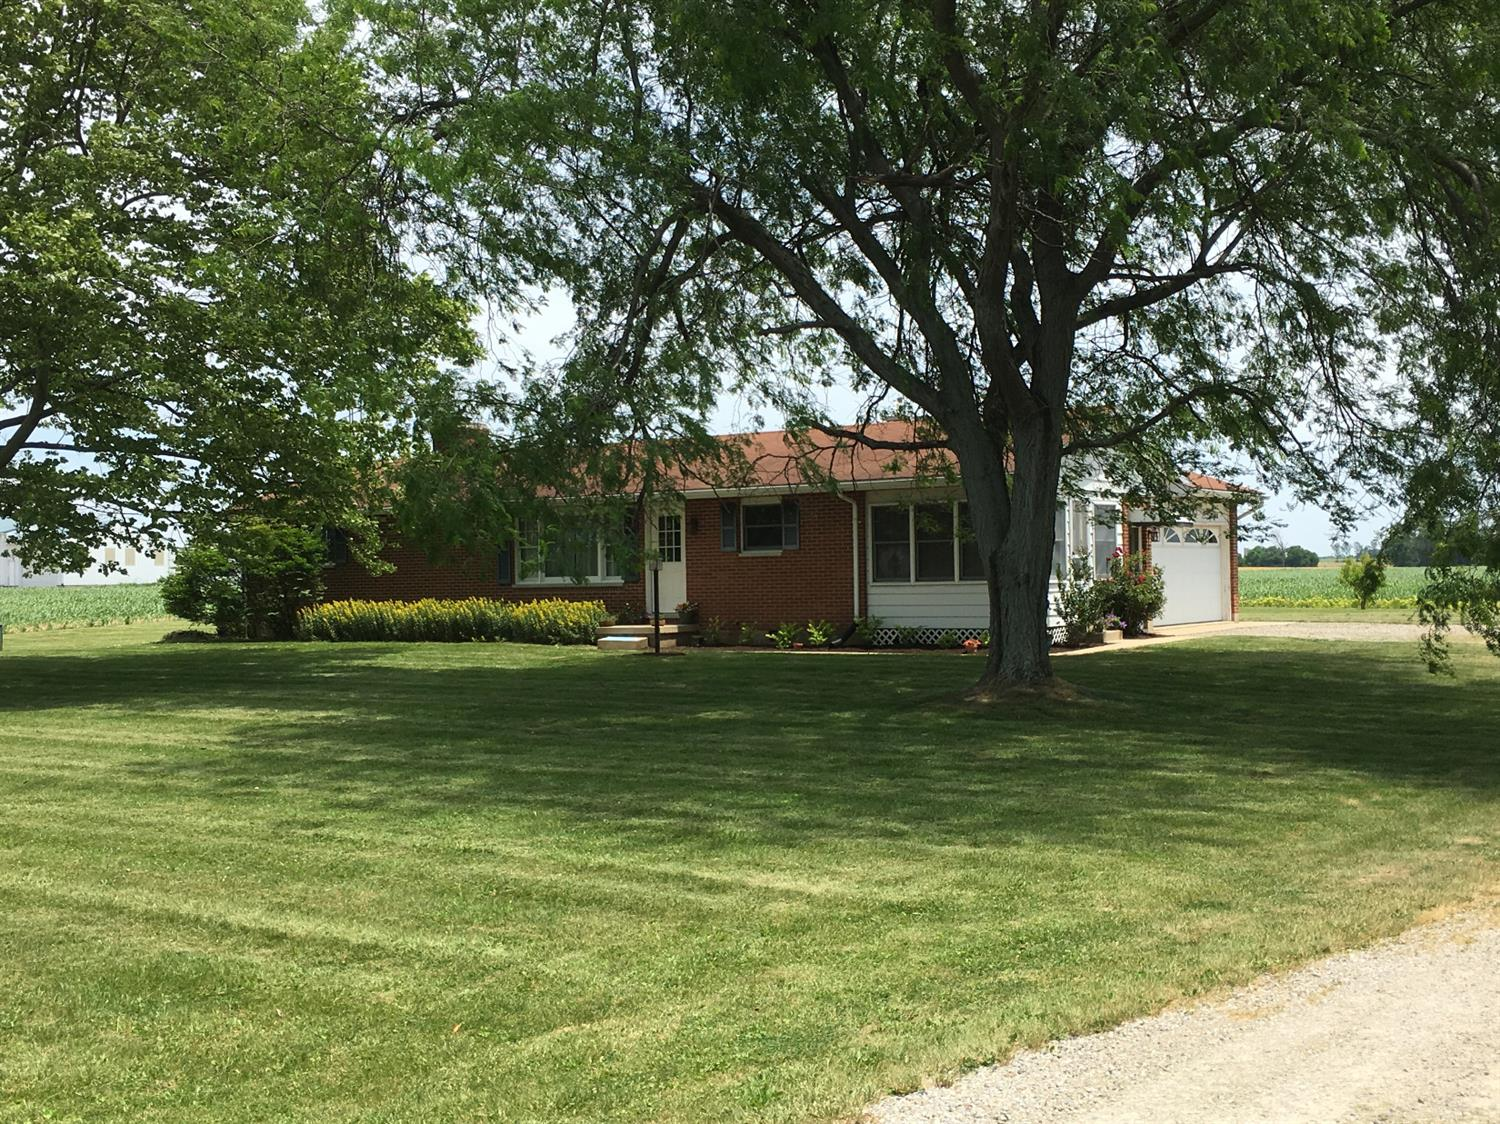 3700 Quaker Trace Rd Preble County, OH